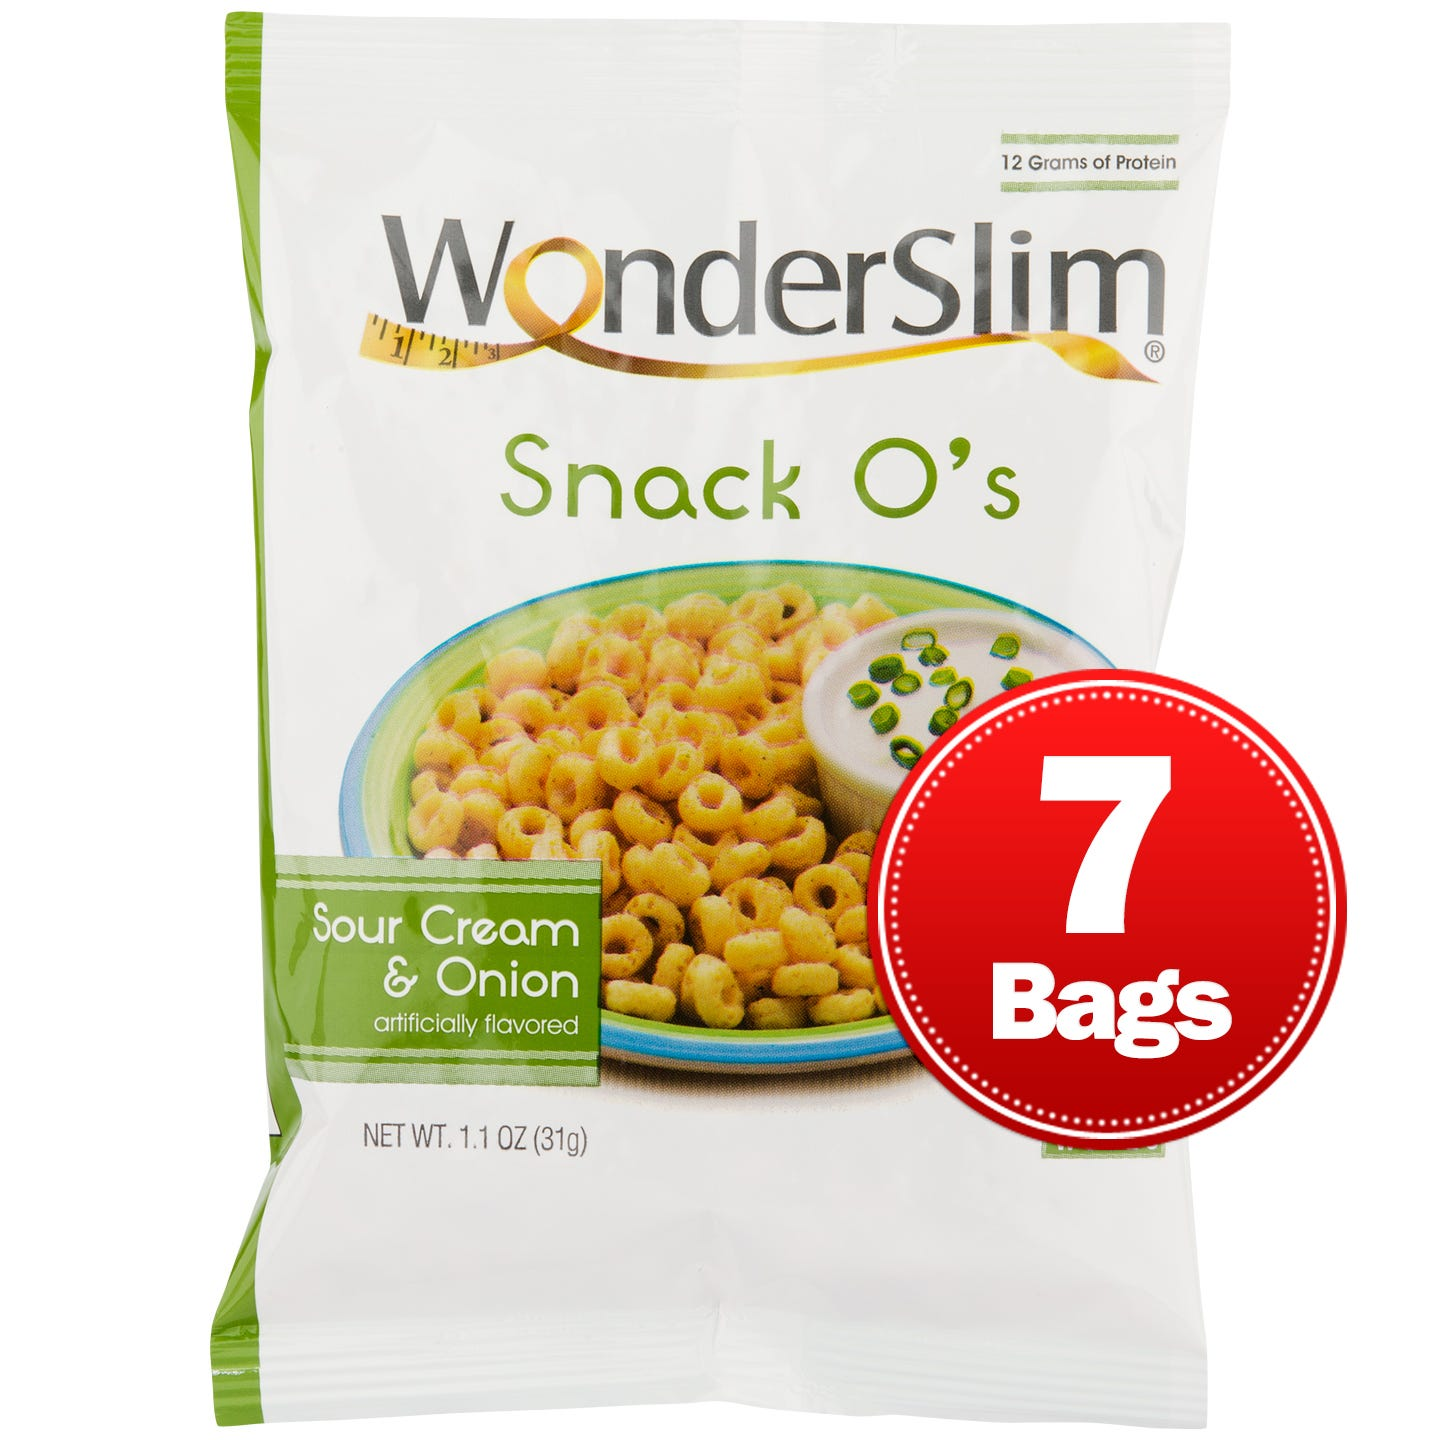 WonderSlim Snack Os Sour Cream & Onion (7 ct)